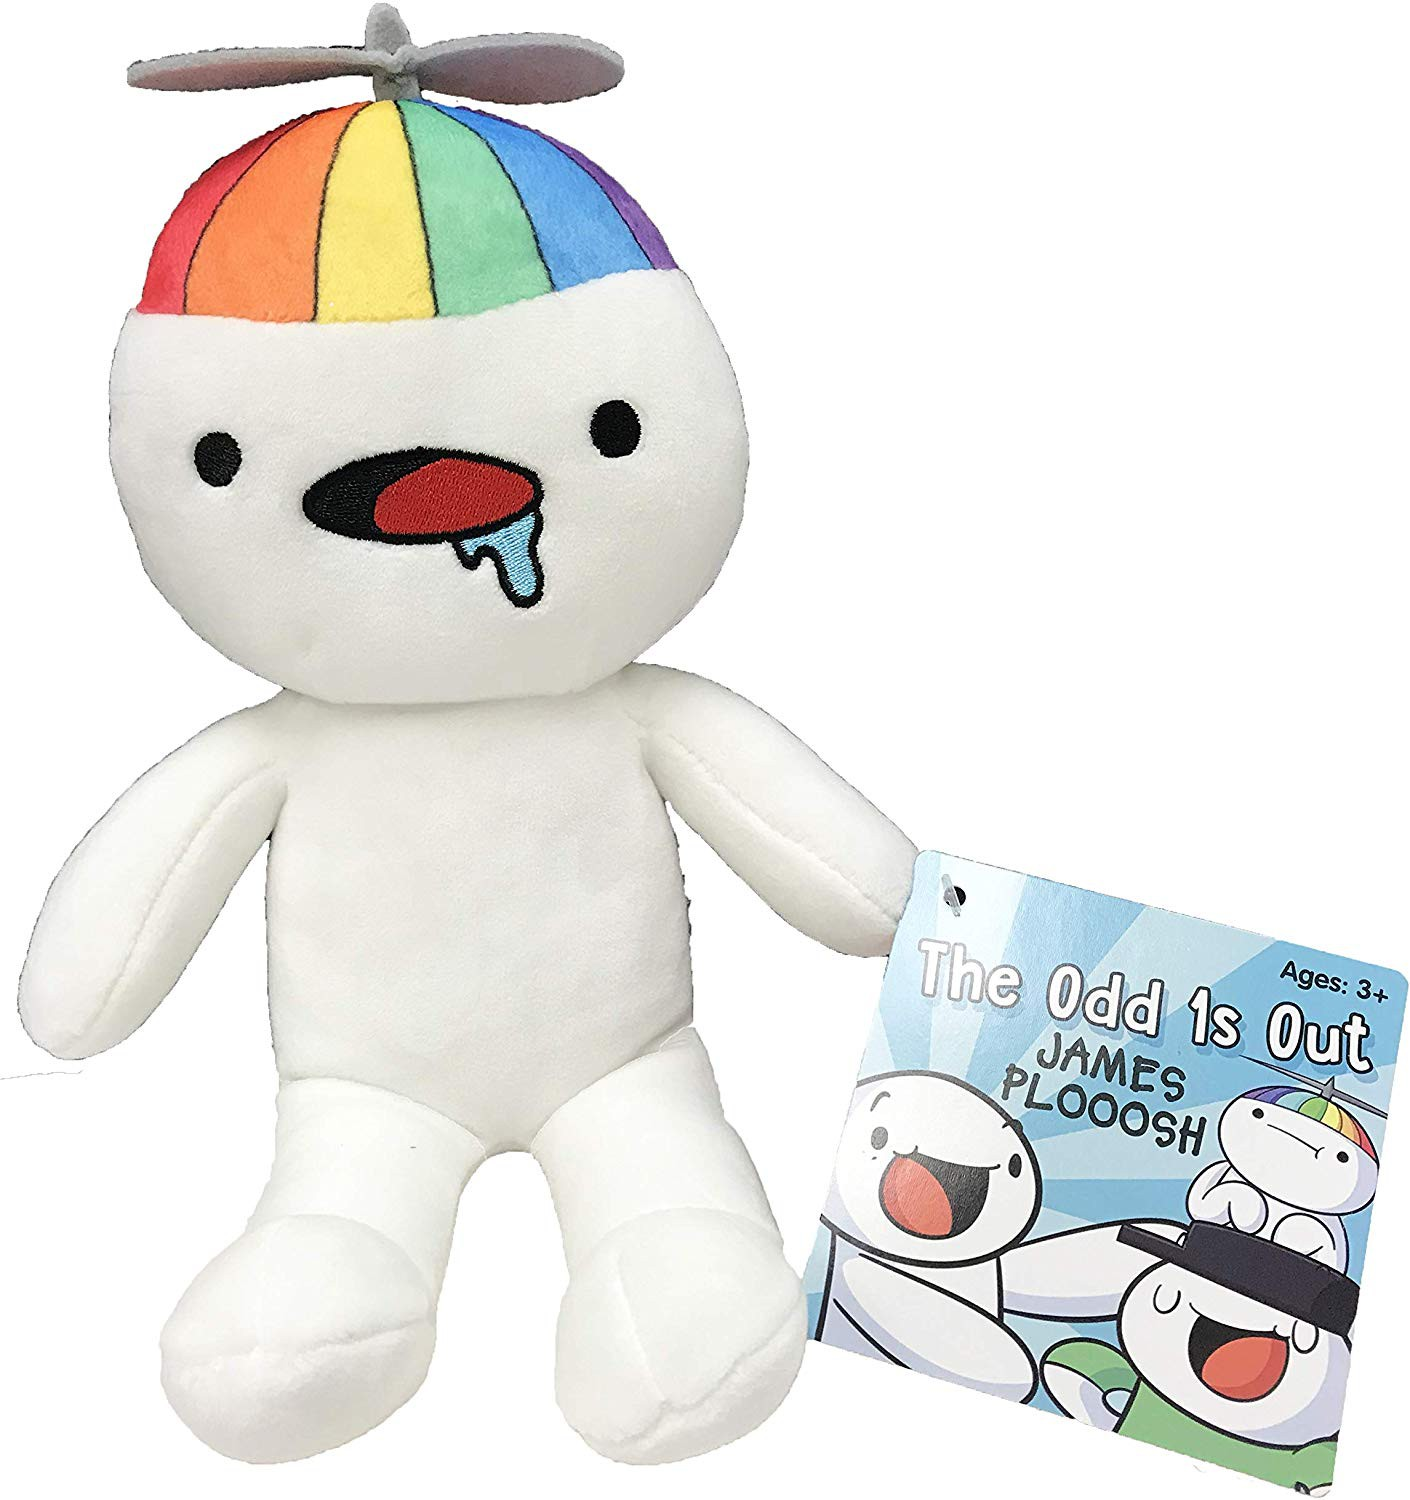 "1x JAMES THE ODD 1/'S OUT ONES SUBWAY PLOOOSH 8/"" EXCLUSIVE OFFICIAL PLUSH IN HAND"